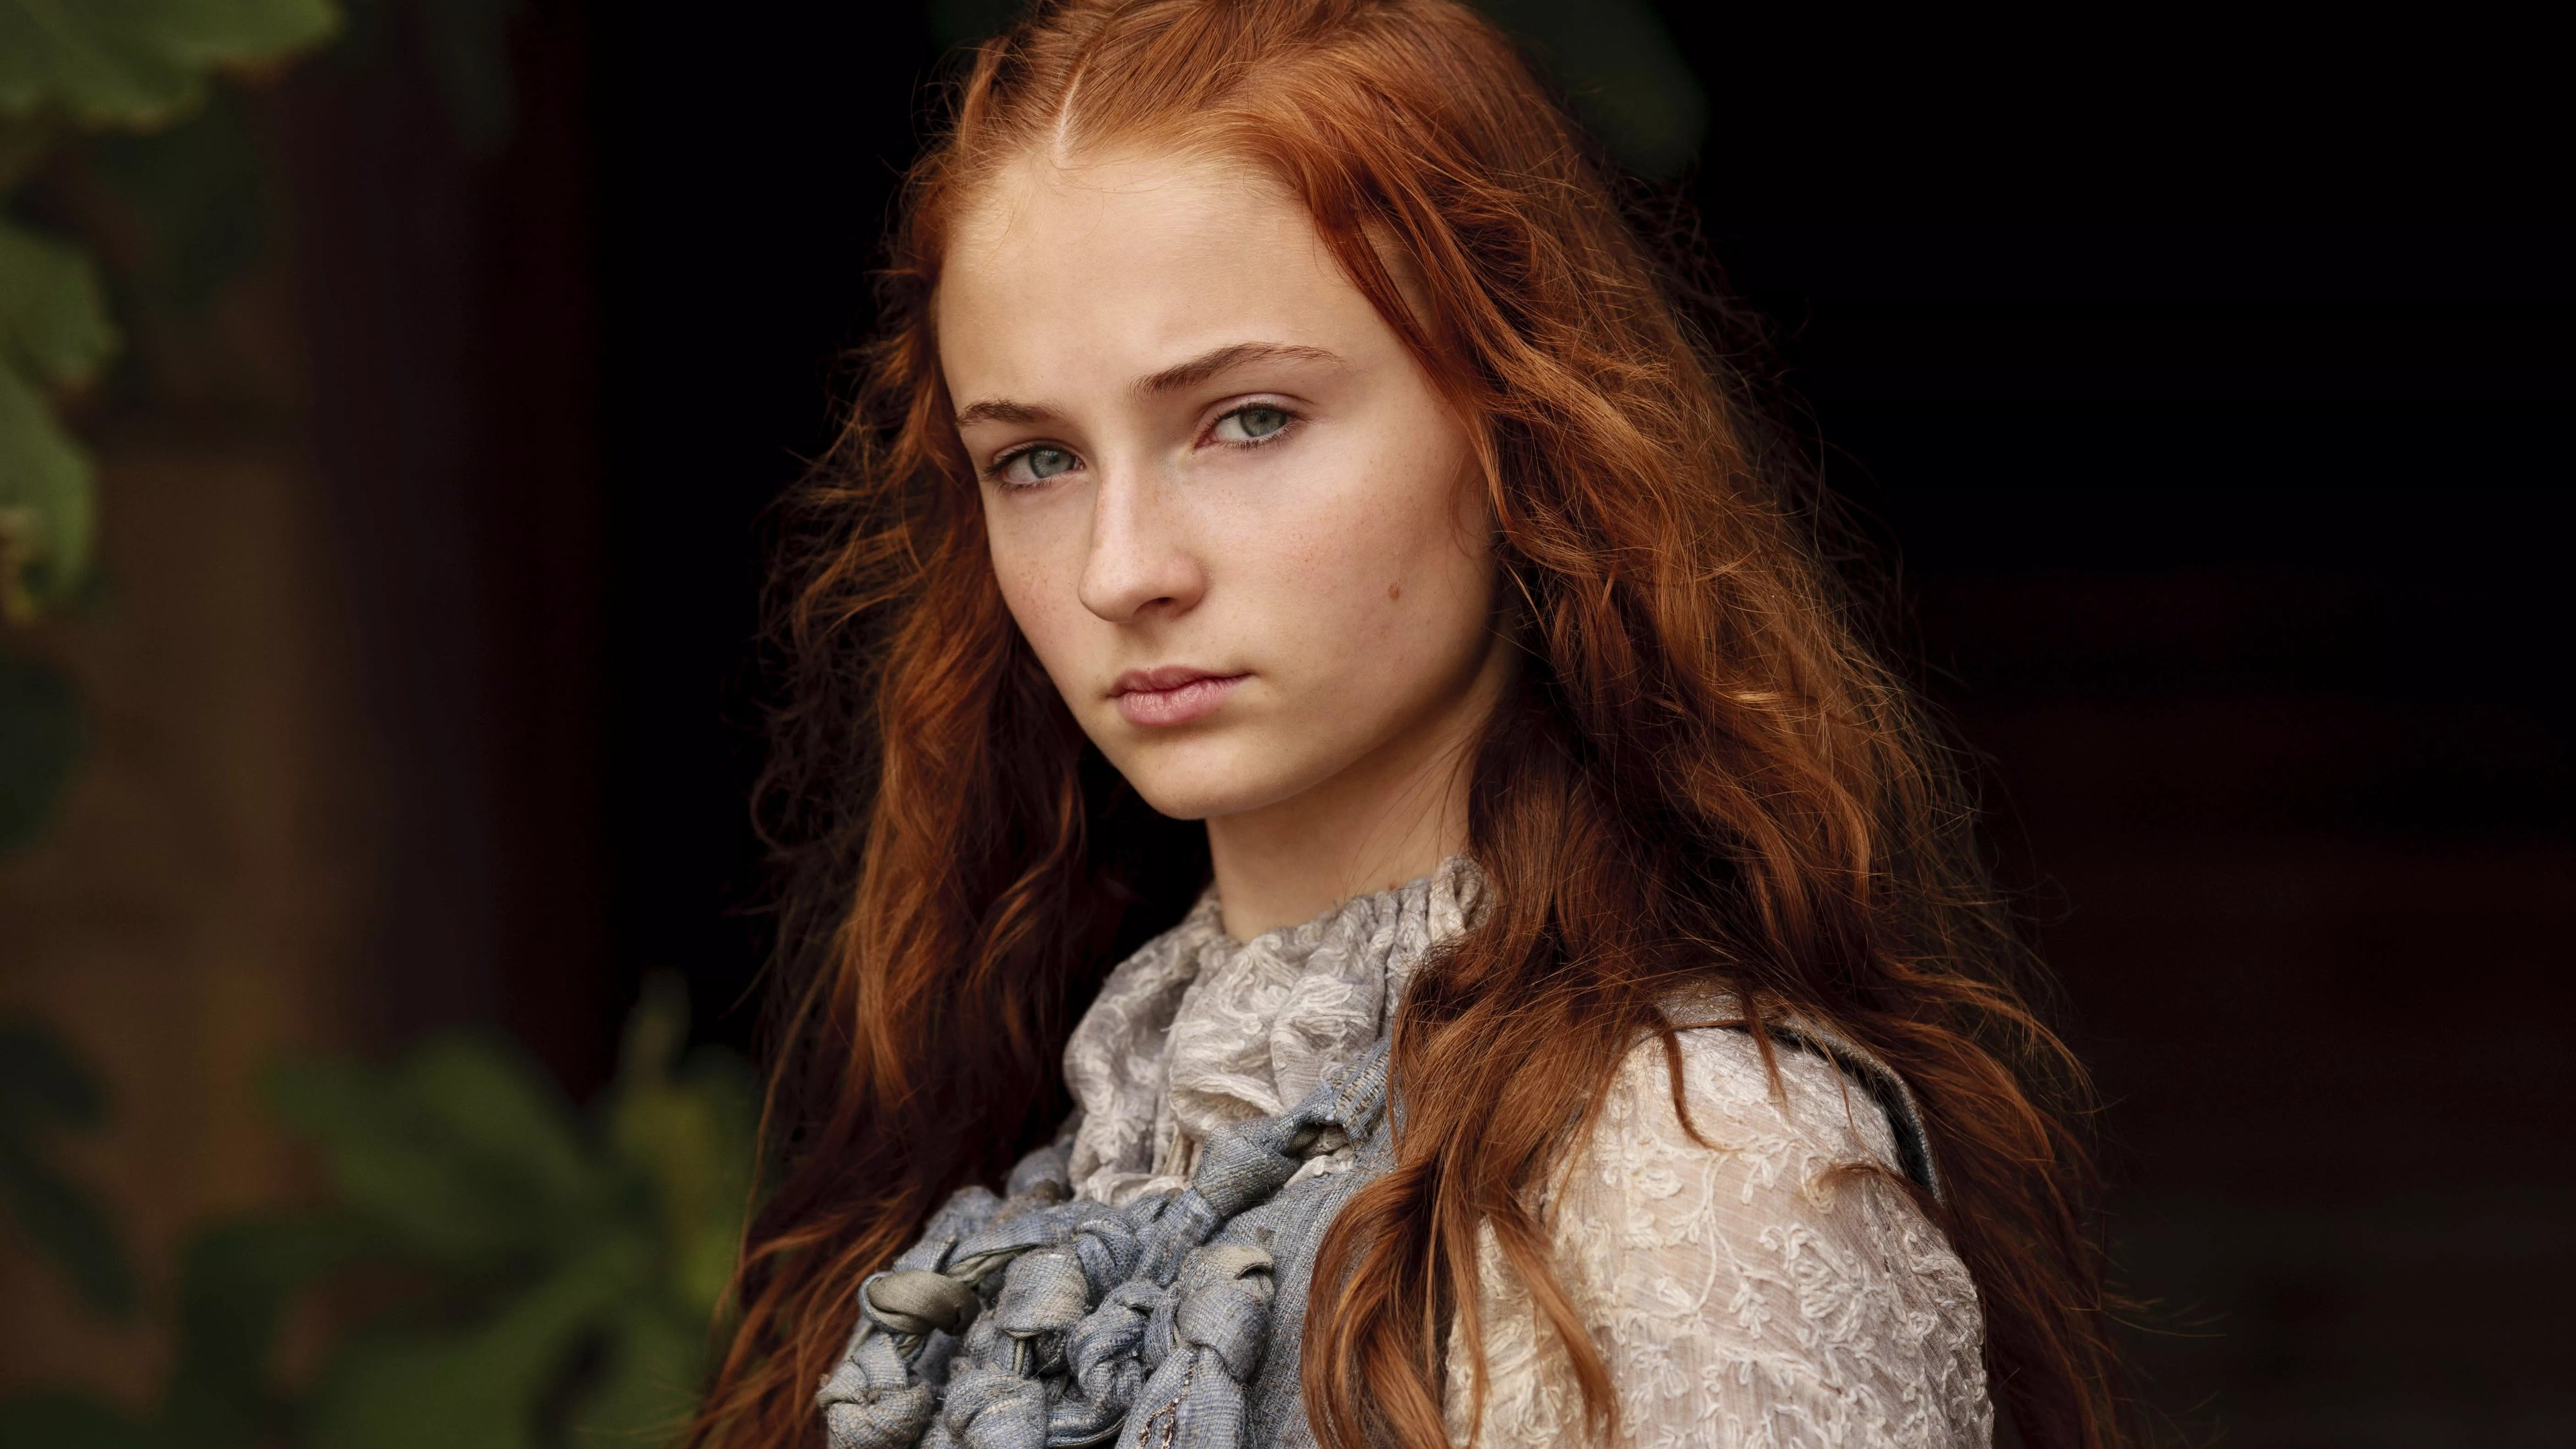 sophie turner 4k new 1542236189 - Sophie Turner 4k New - sophie turner wallpapers, hd-wallpapers, girls wallpapers, celebrities wallpapers, actress wallpapers, 4k-wallpapers